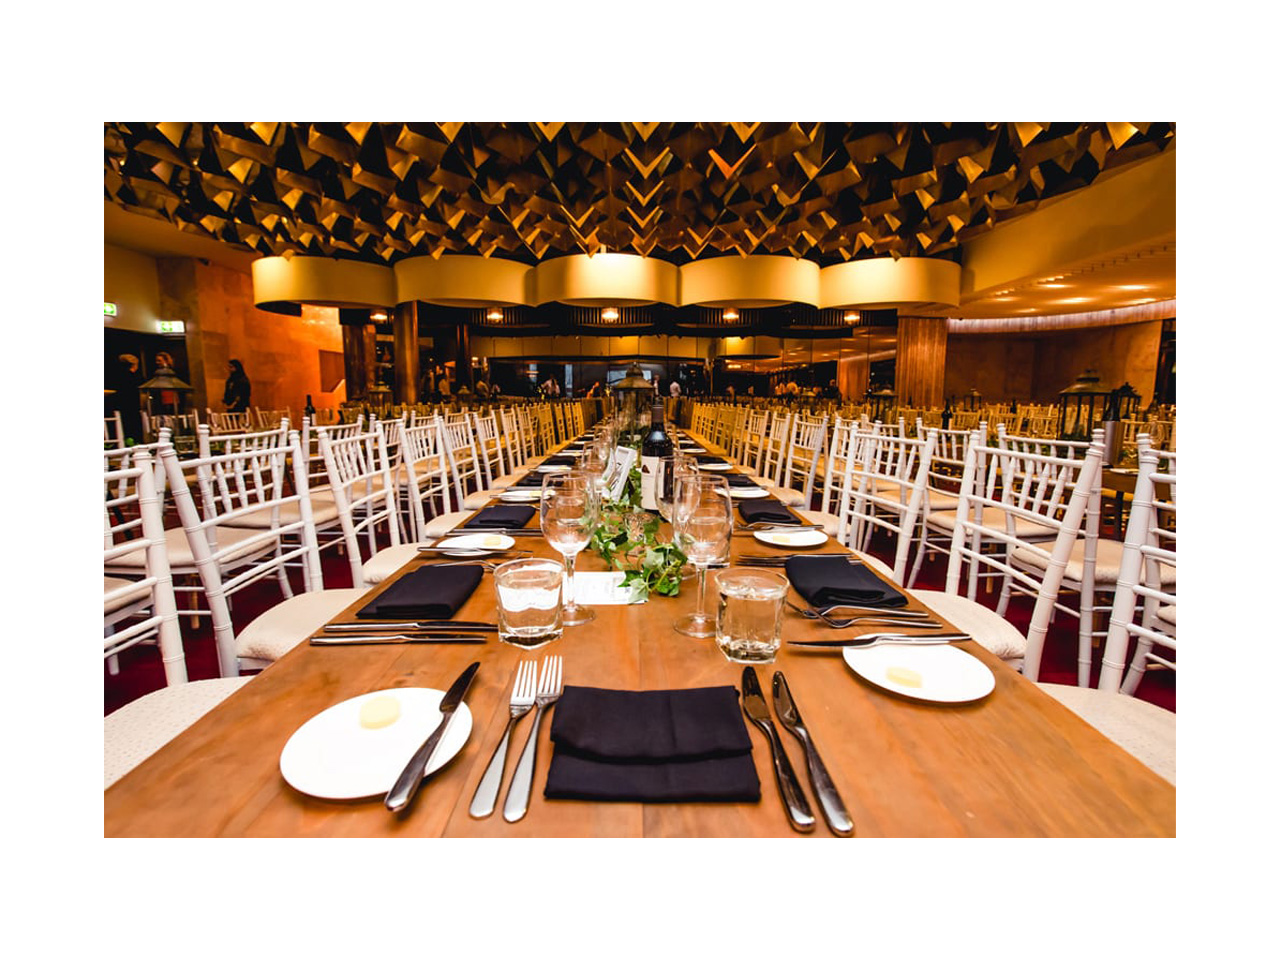 Large function room with long table with exquisite decor